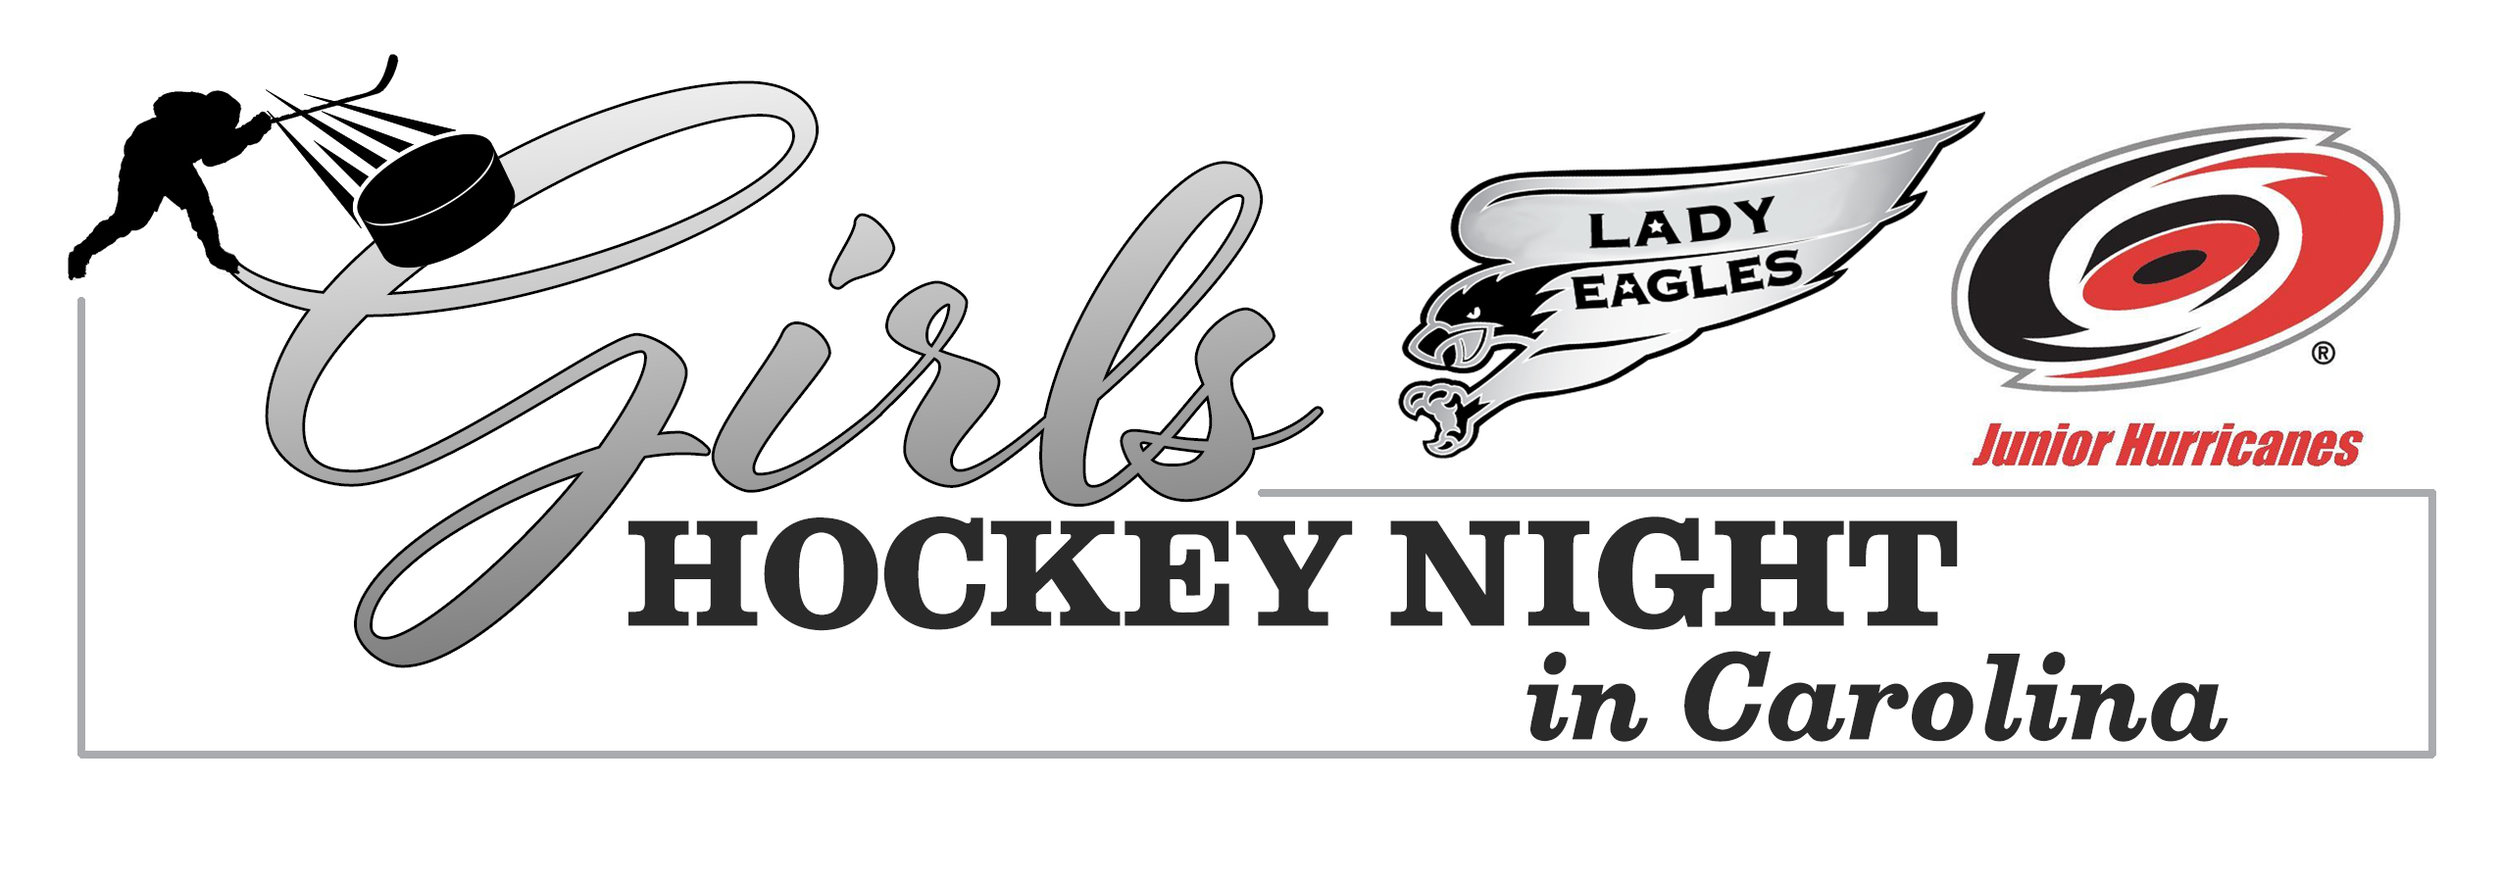 Girls Hockey Night_8.5_header.jpg